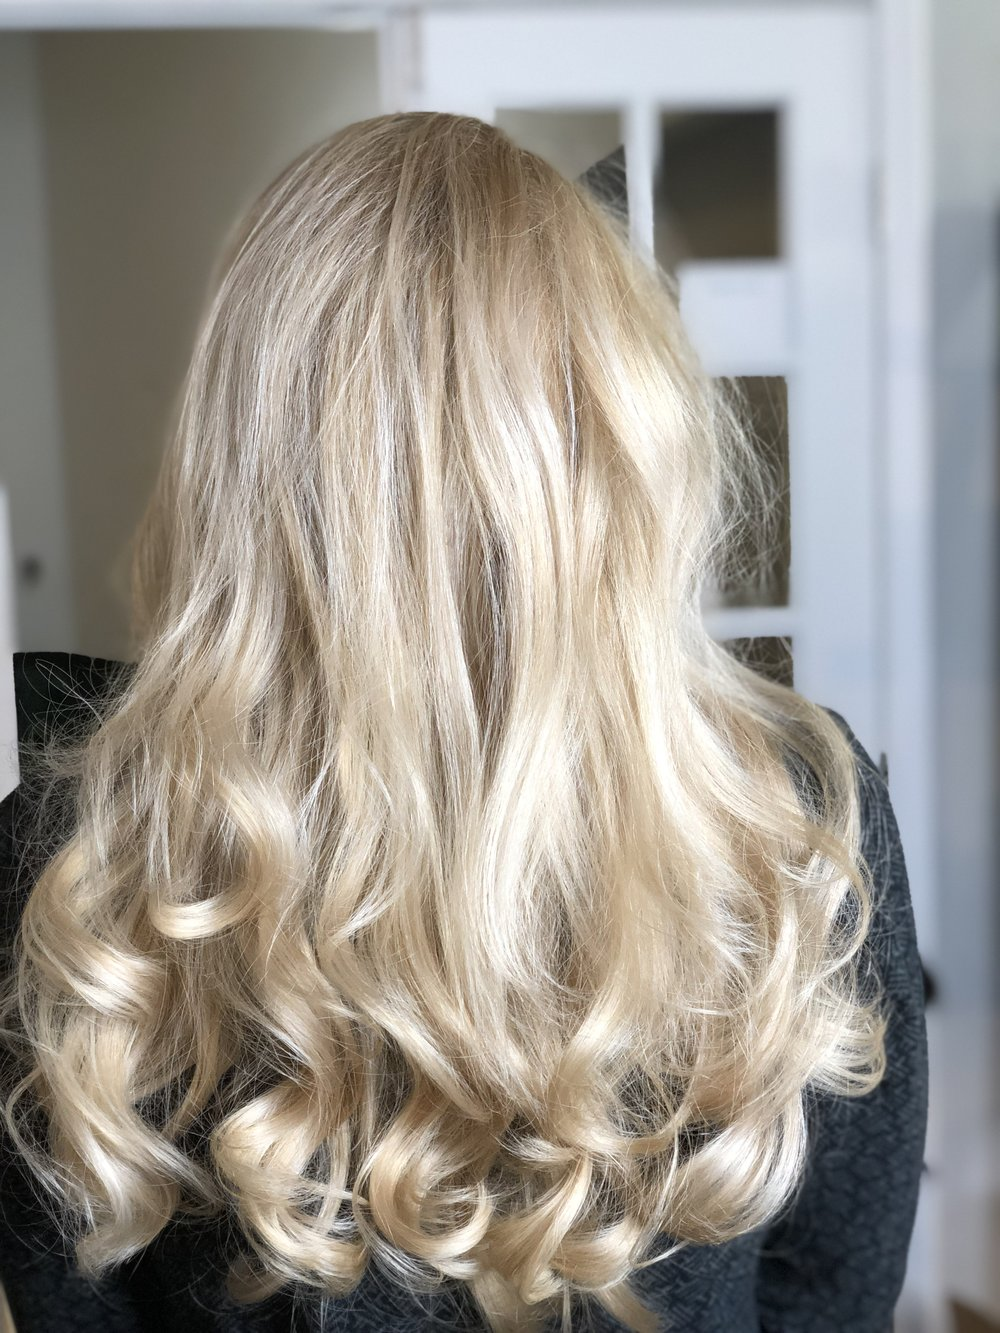 Gorgous blonde hair color